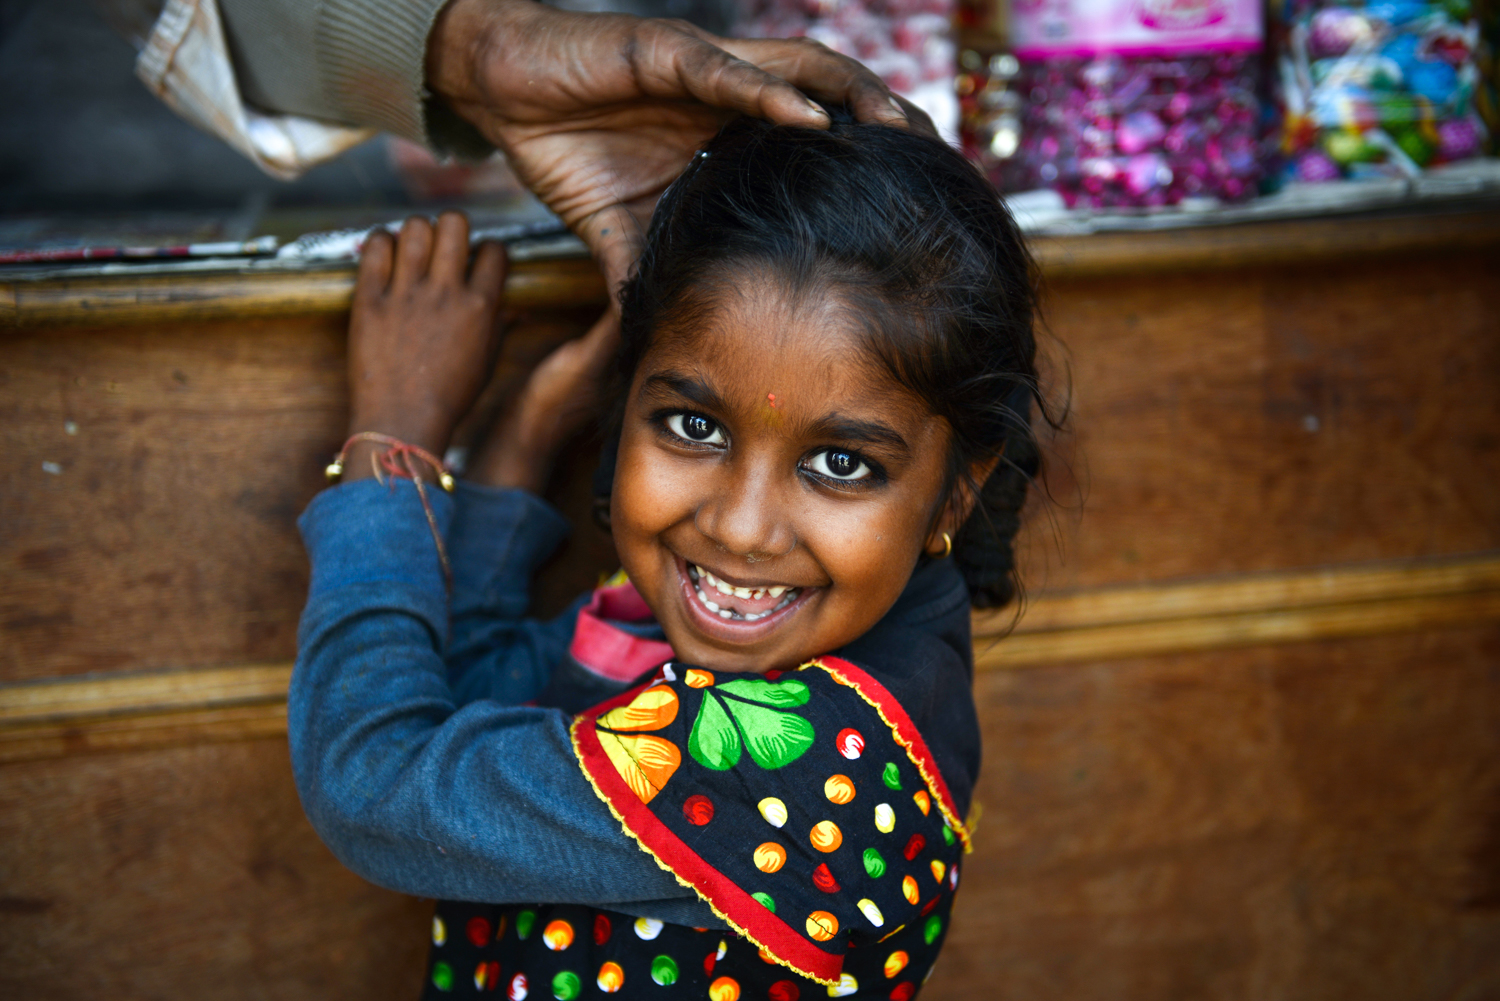 A young girl flashes a smile as I ask her about her family - Ramnagar, India.